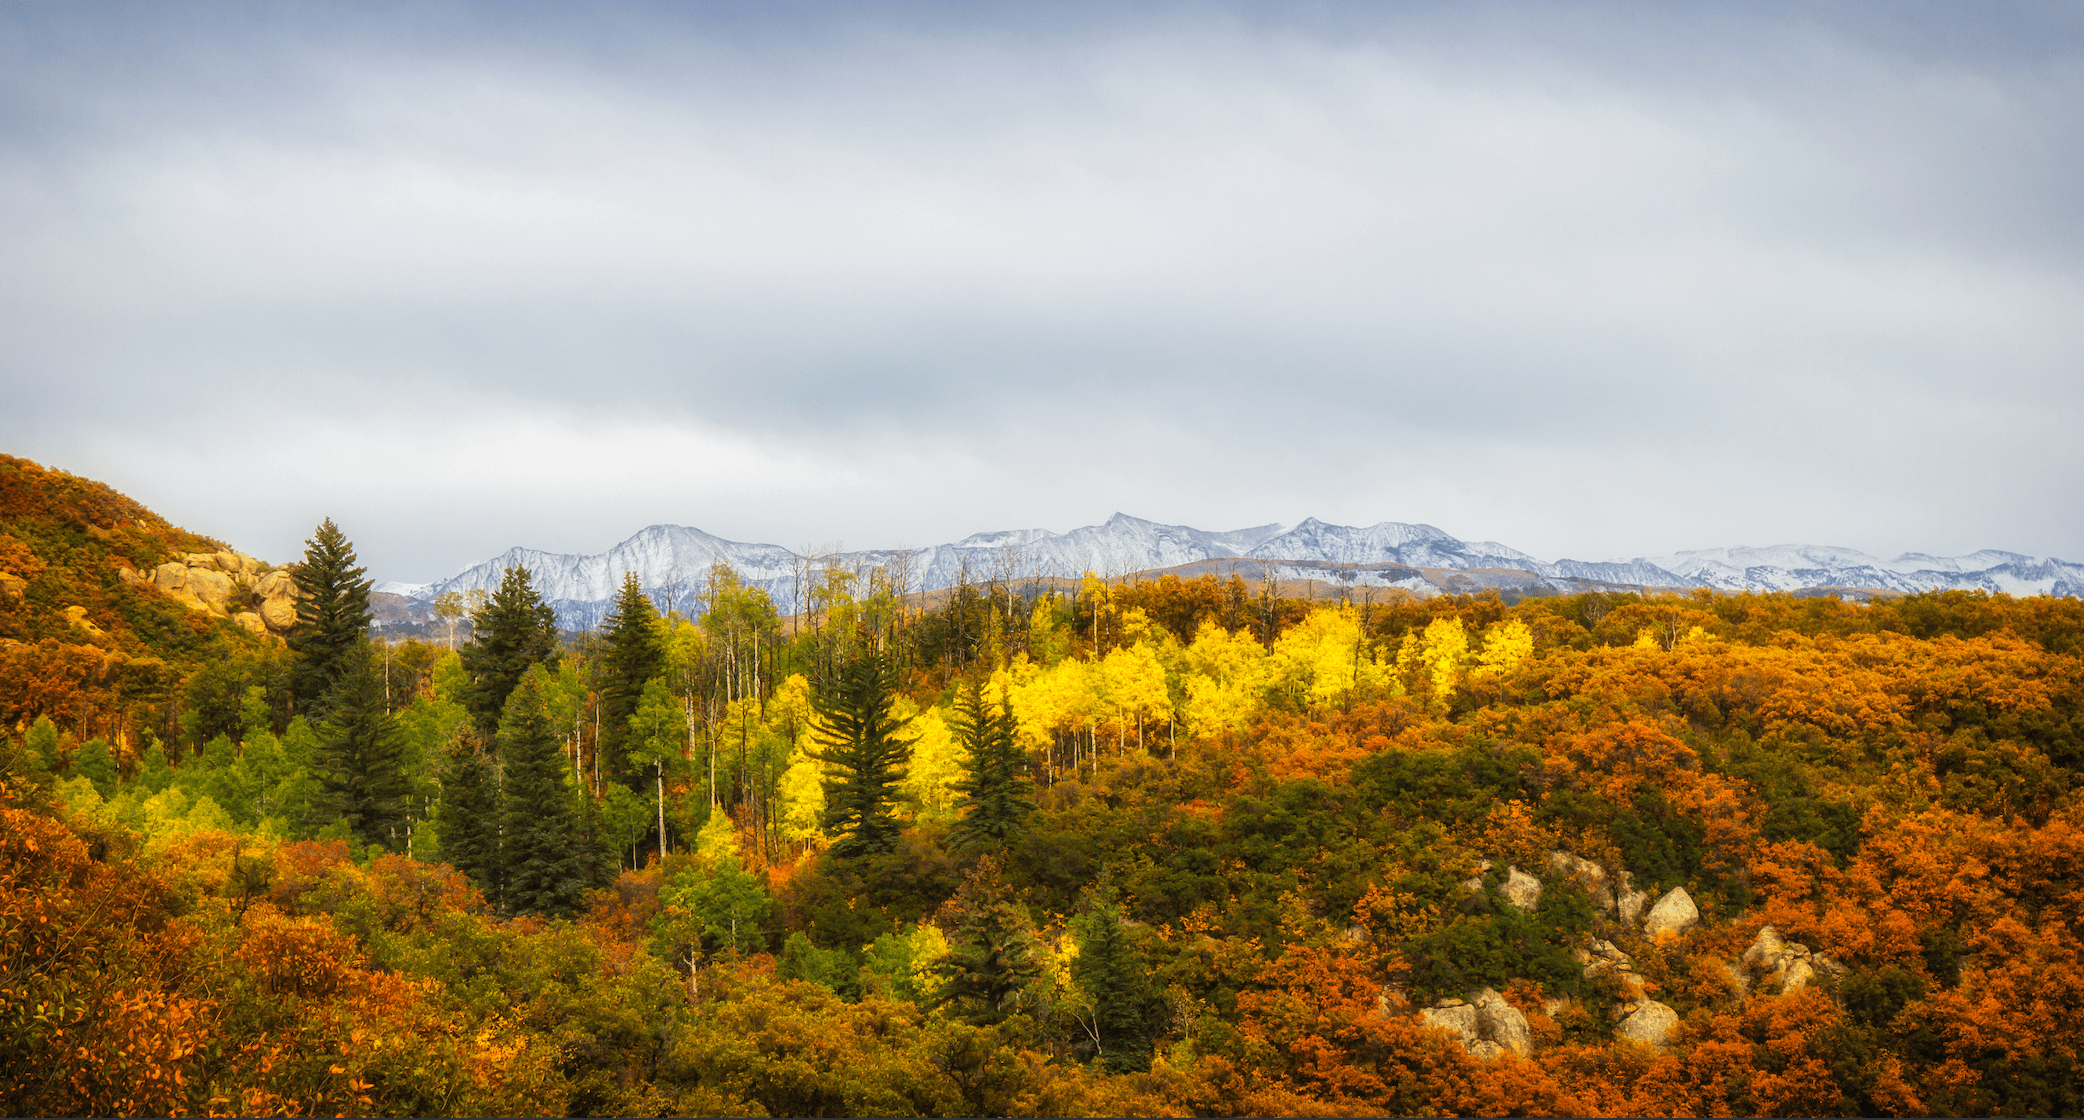 Experience Fall Colors in the Southwest Without the Crowds